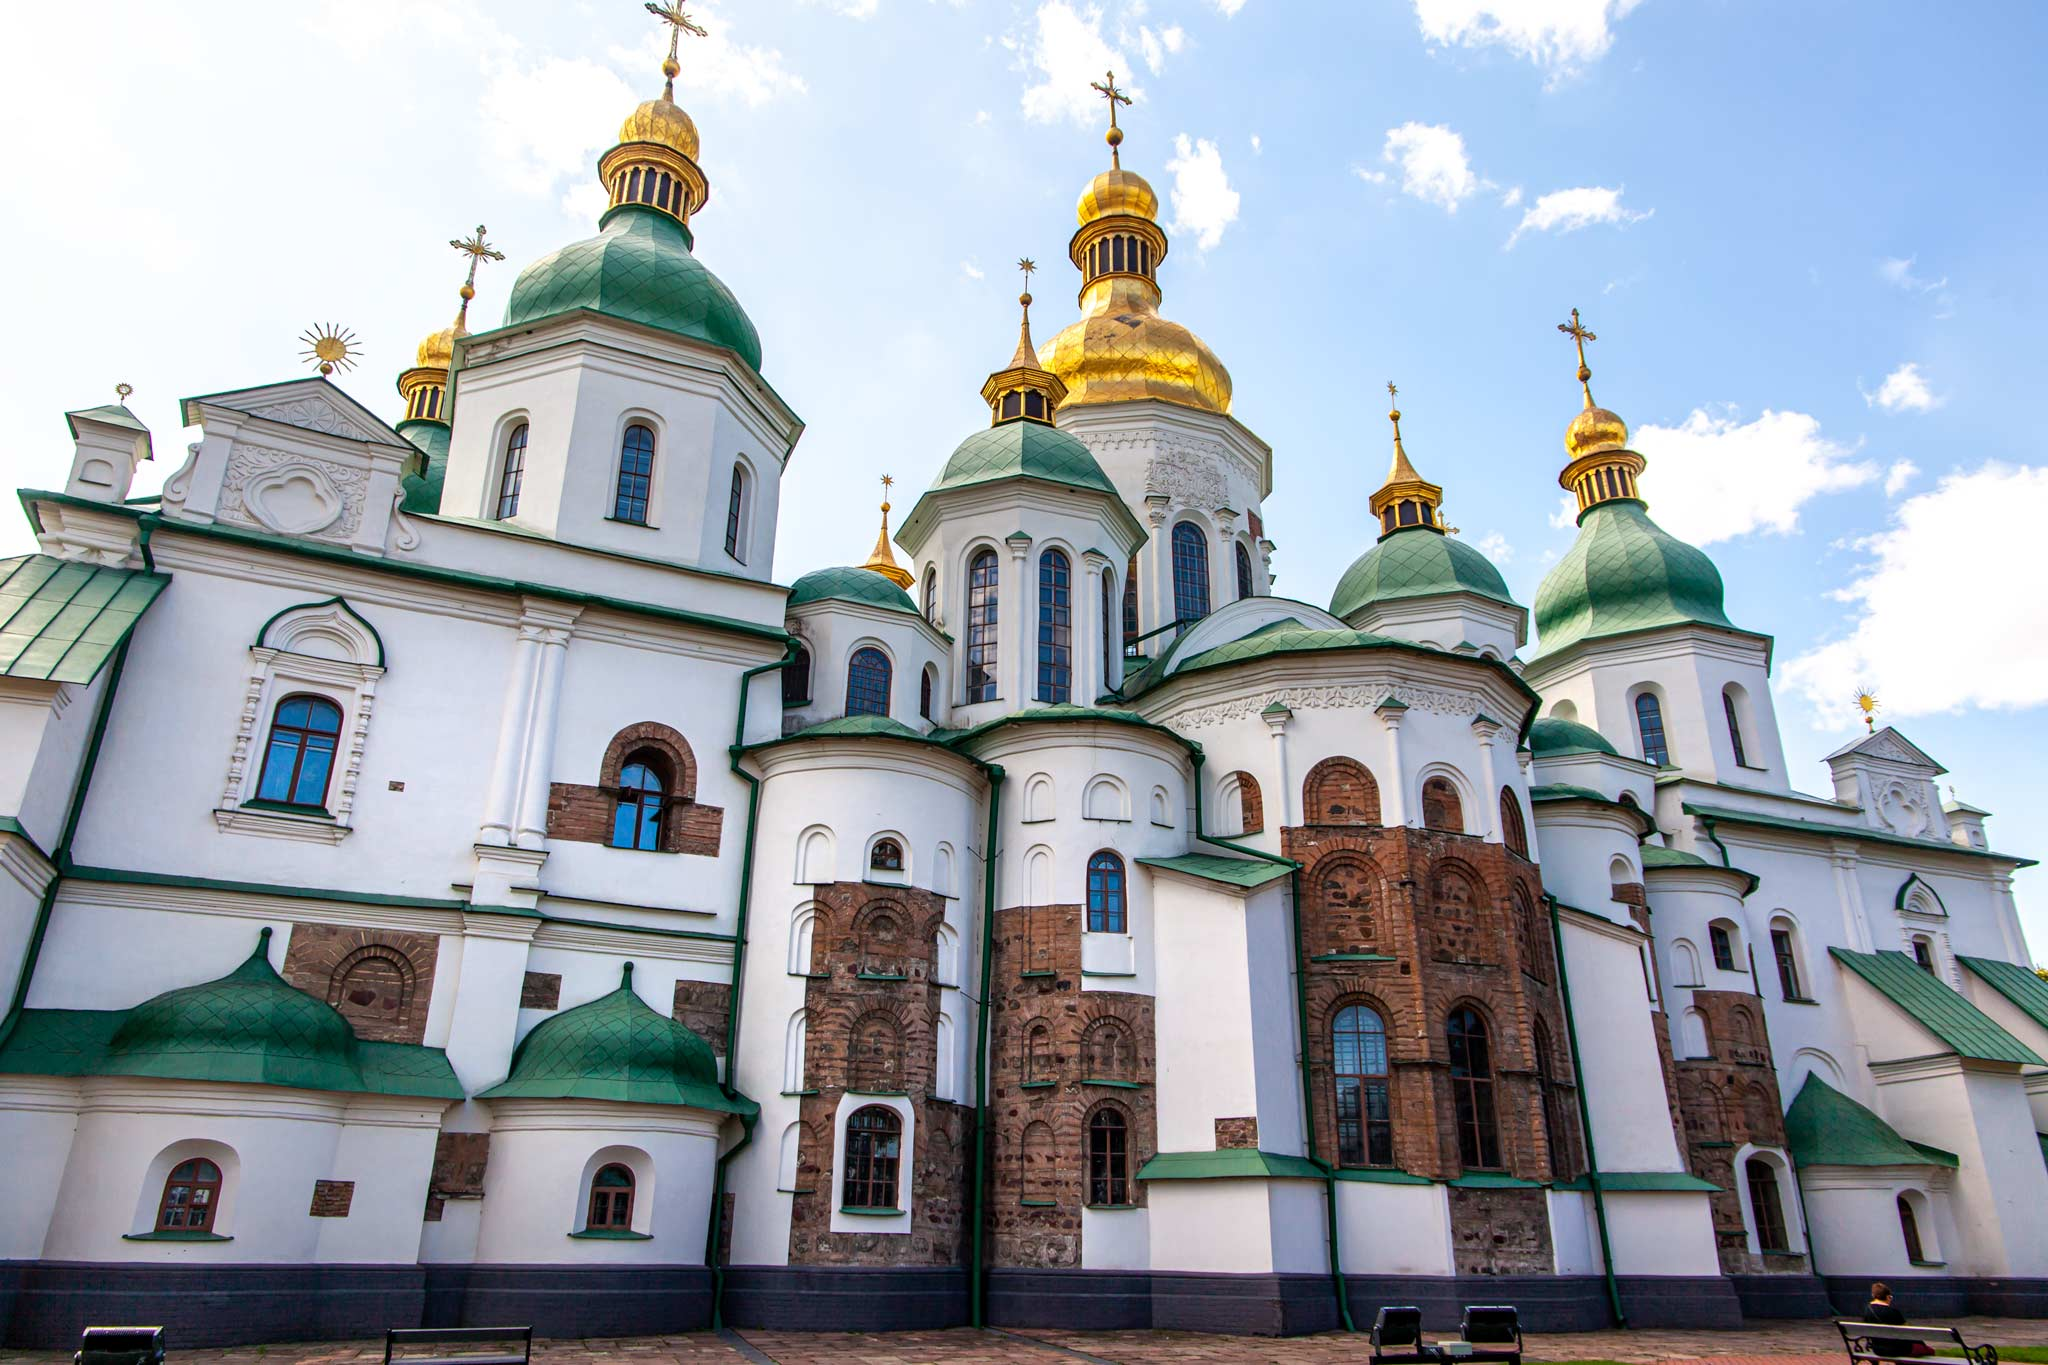 A green and white Kyiv orthodox cathedral with gold domes on the roof